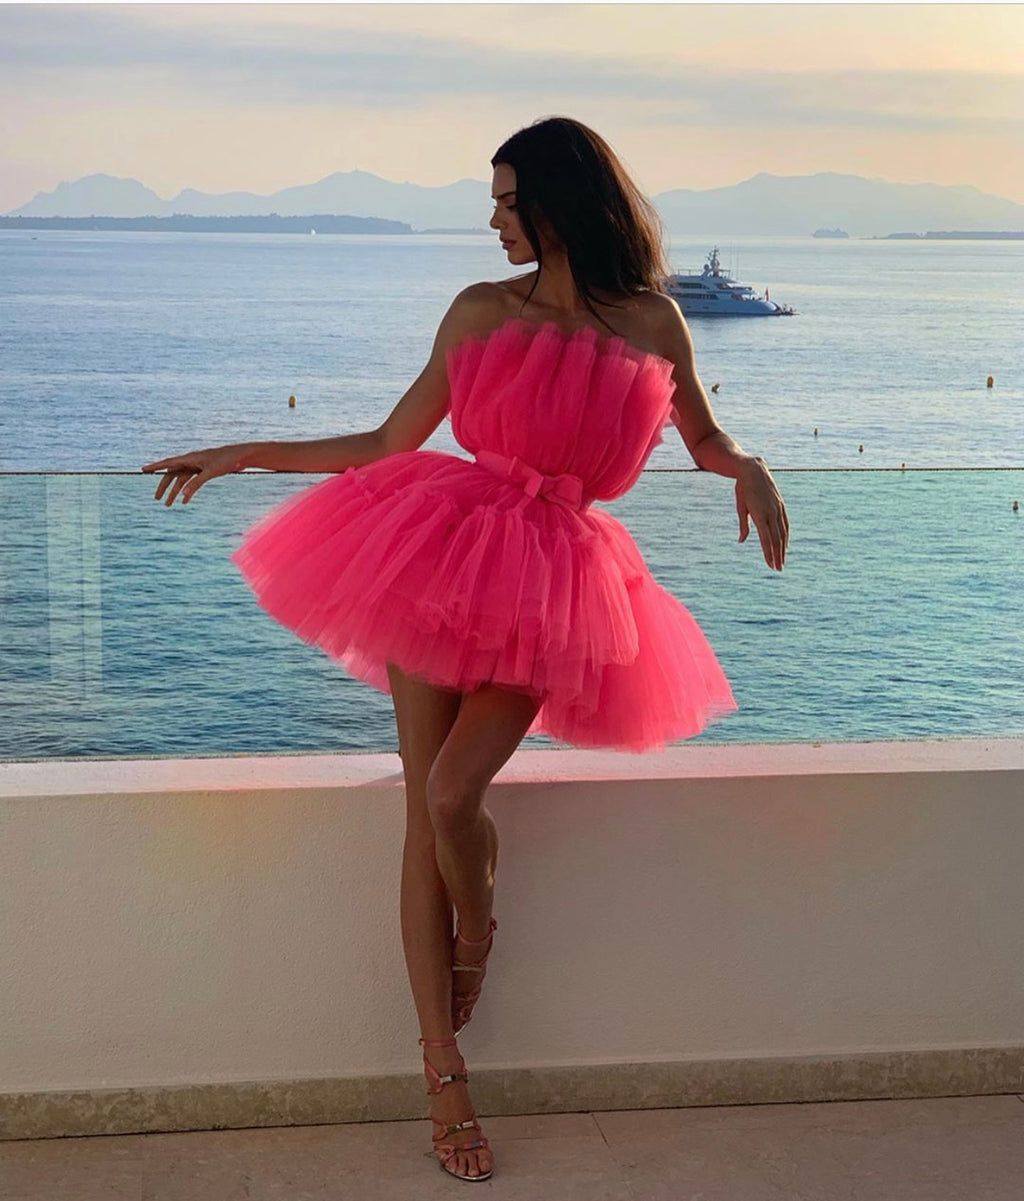 Strapless Flirty Hot Pink Tutu Tulle Dress Similar Style Worn by Kendall Jenner (Custom Colors Available)